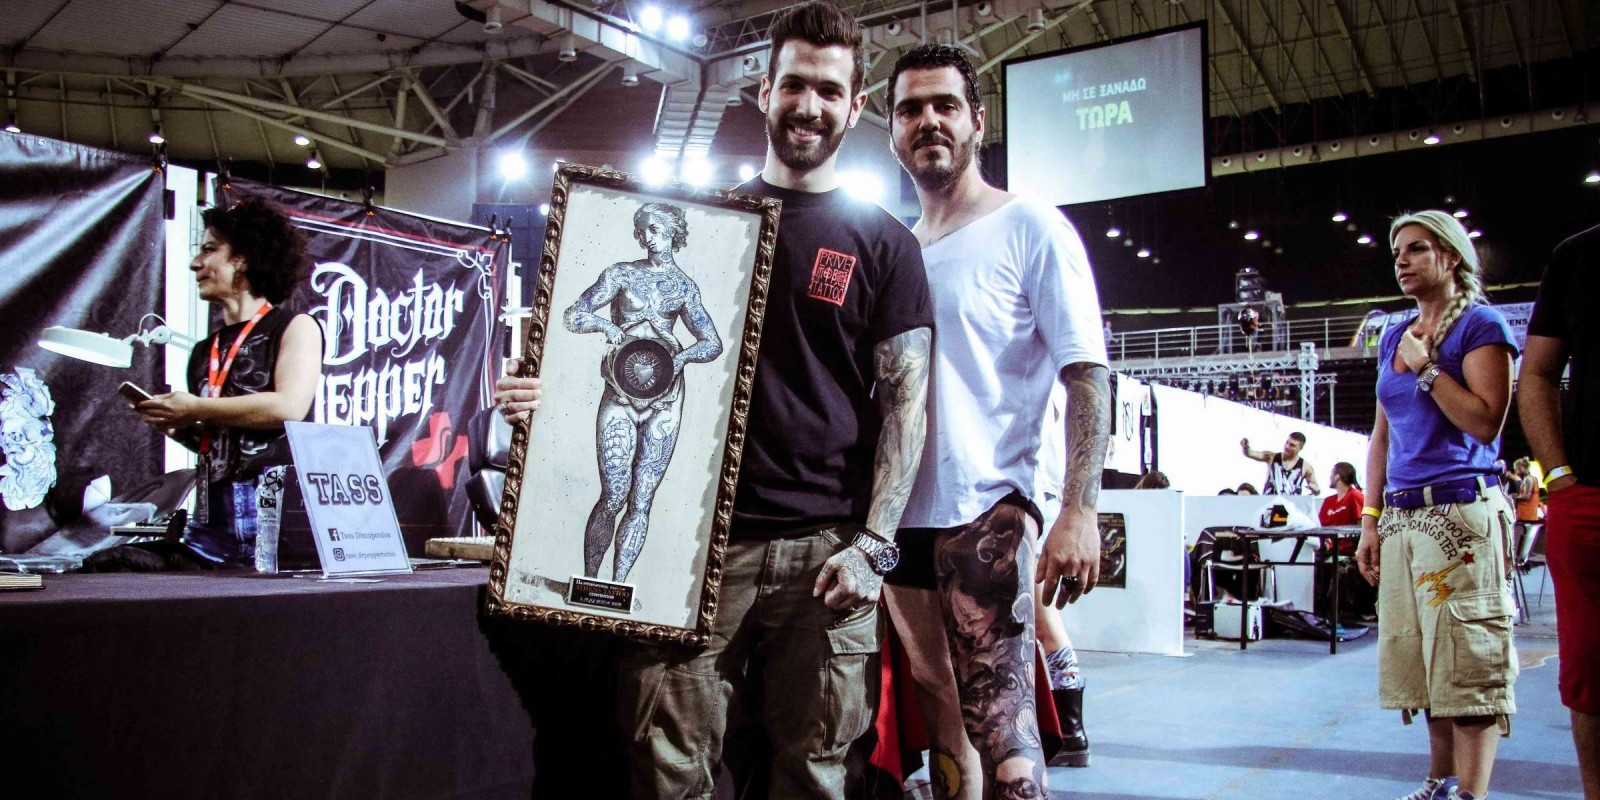 Photos from 11th Athens International Tattoo Convention fuelled by Monster Energy. winner of Best of Show